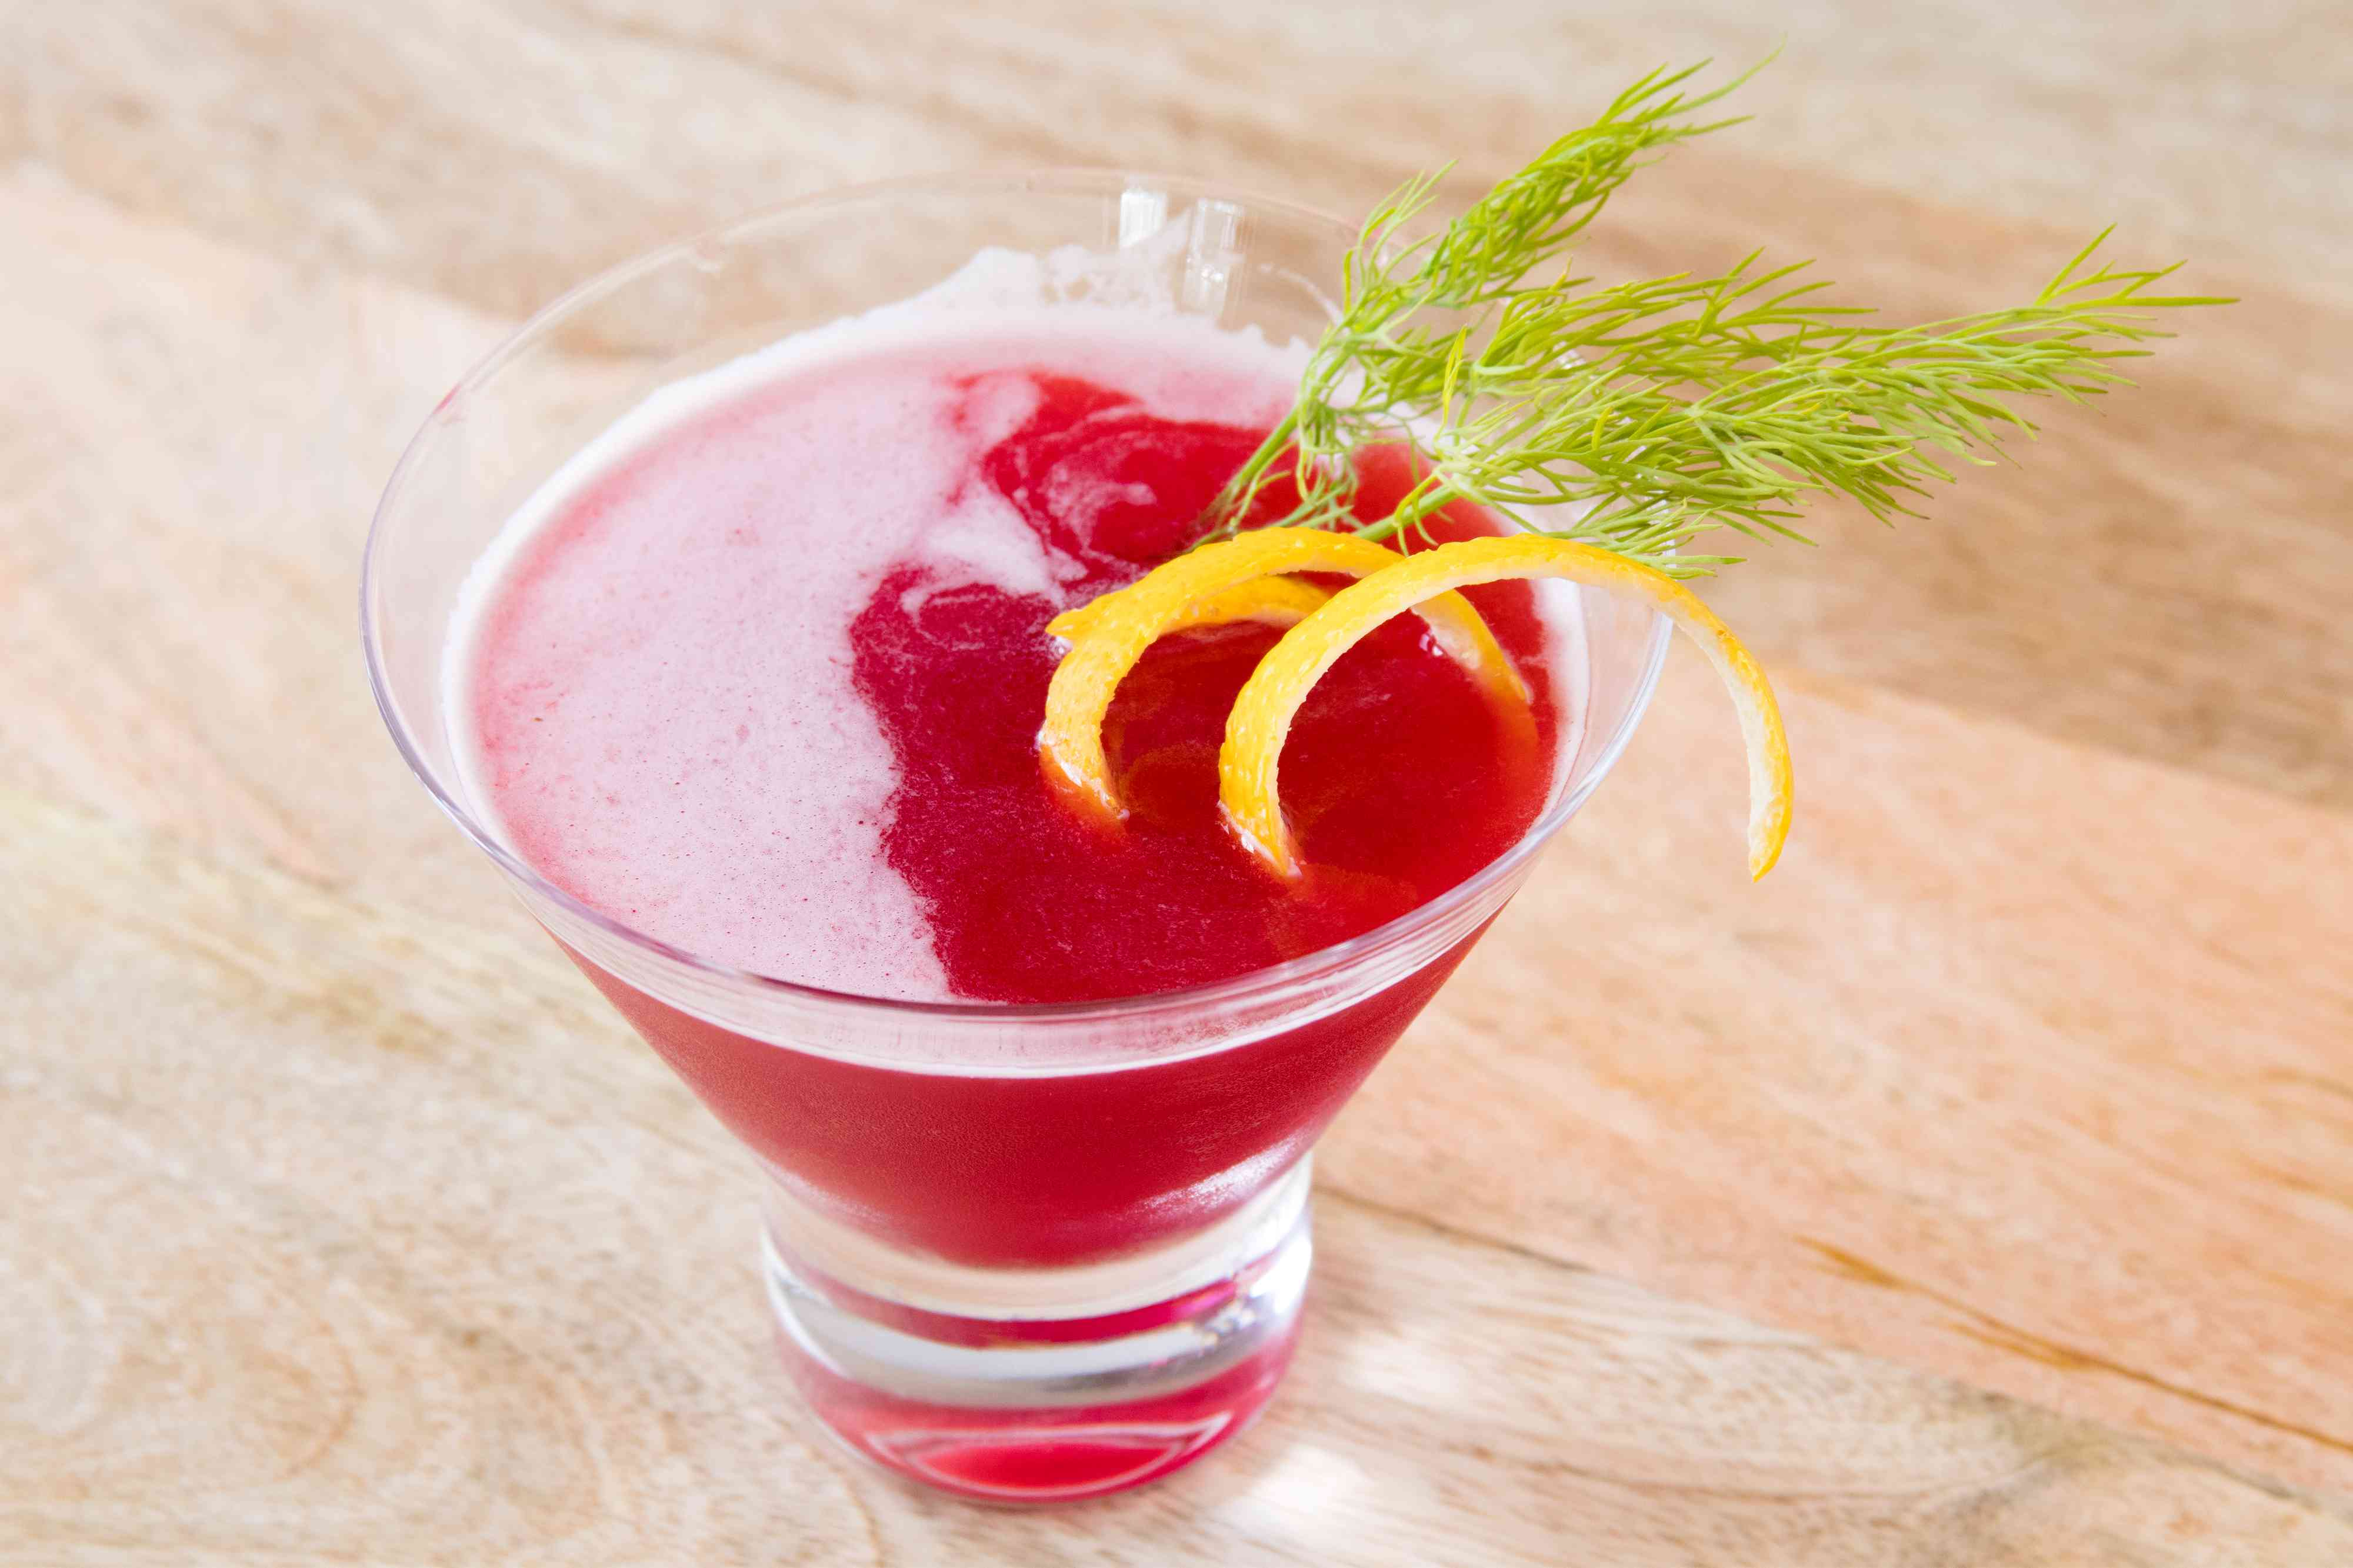 Ruby Queen Scotch Whisky and Beet Juice Cocktail